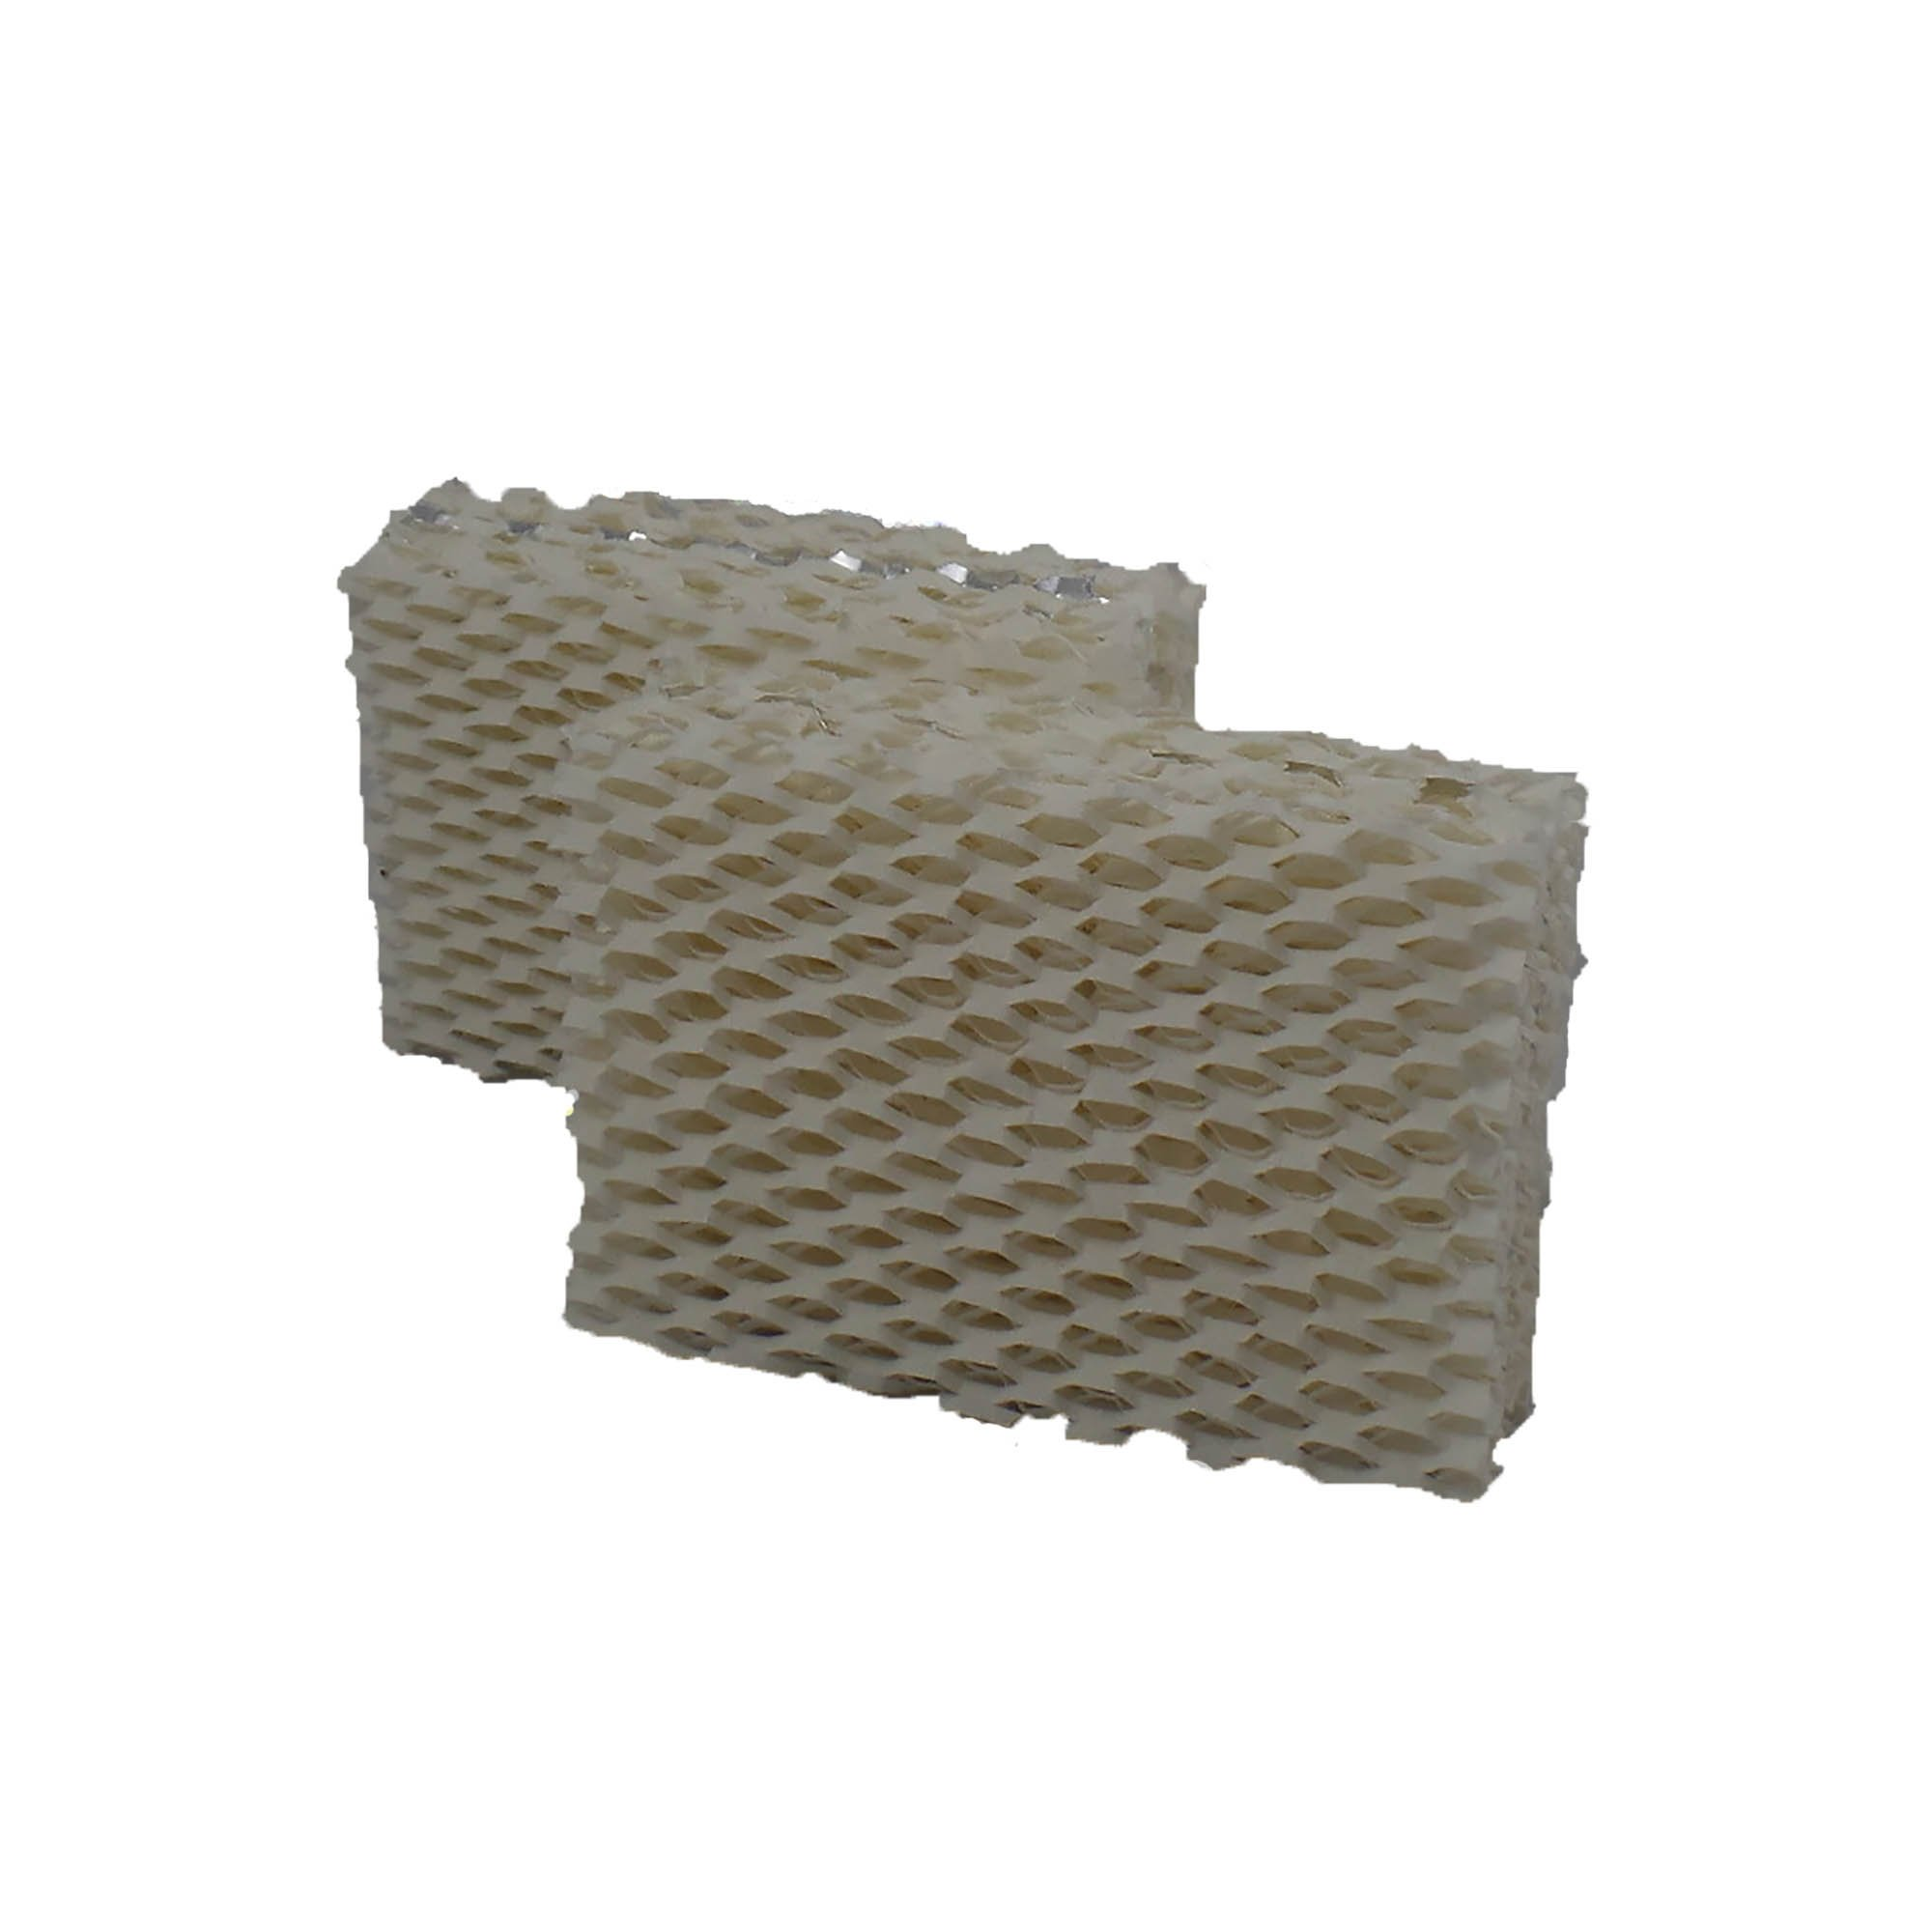 2 PACK Air Filter Factory Compatible Replacement For ReliOn RCM-832 Wick Filters by Air Filter Factory